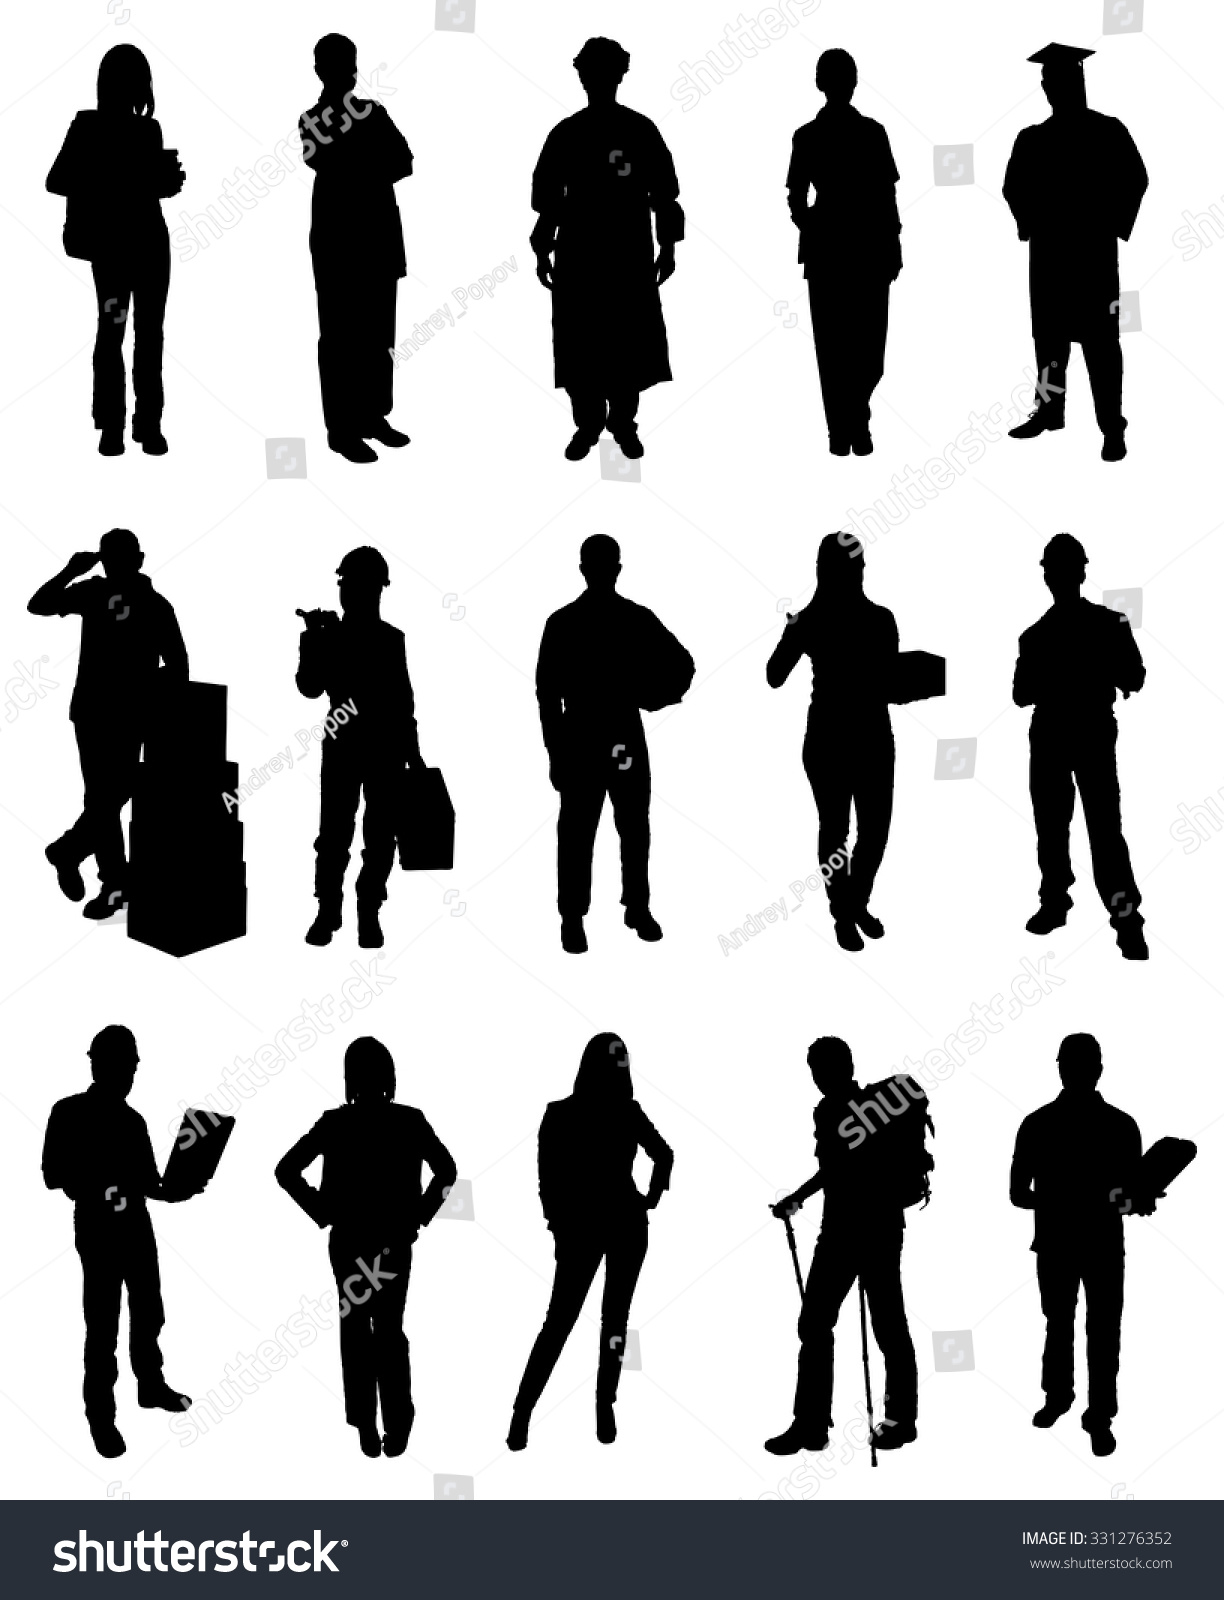 People Occupations Jobs And Community At: Set People Various Occupations Silhouettes Vector Stock